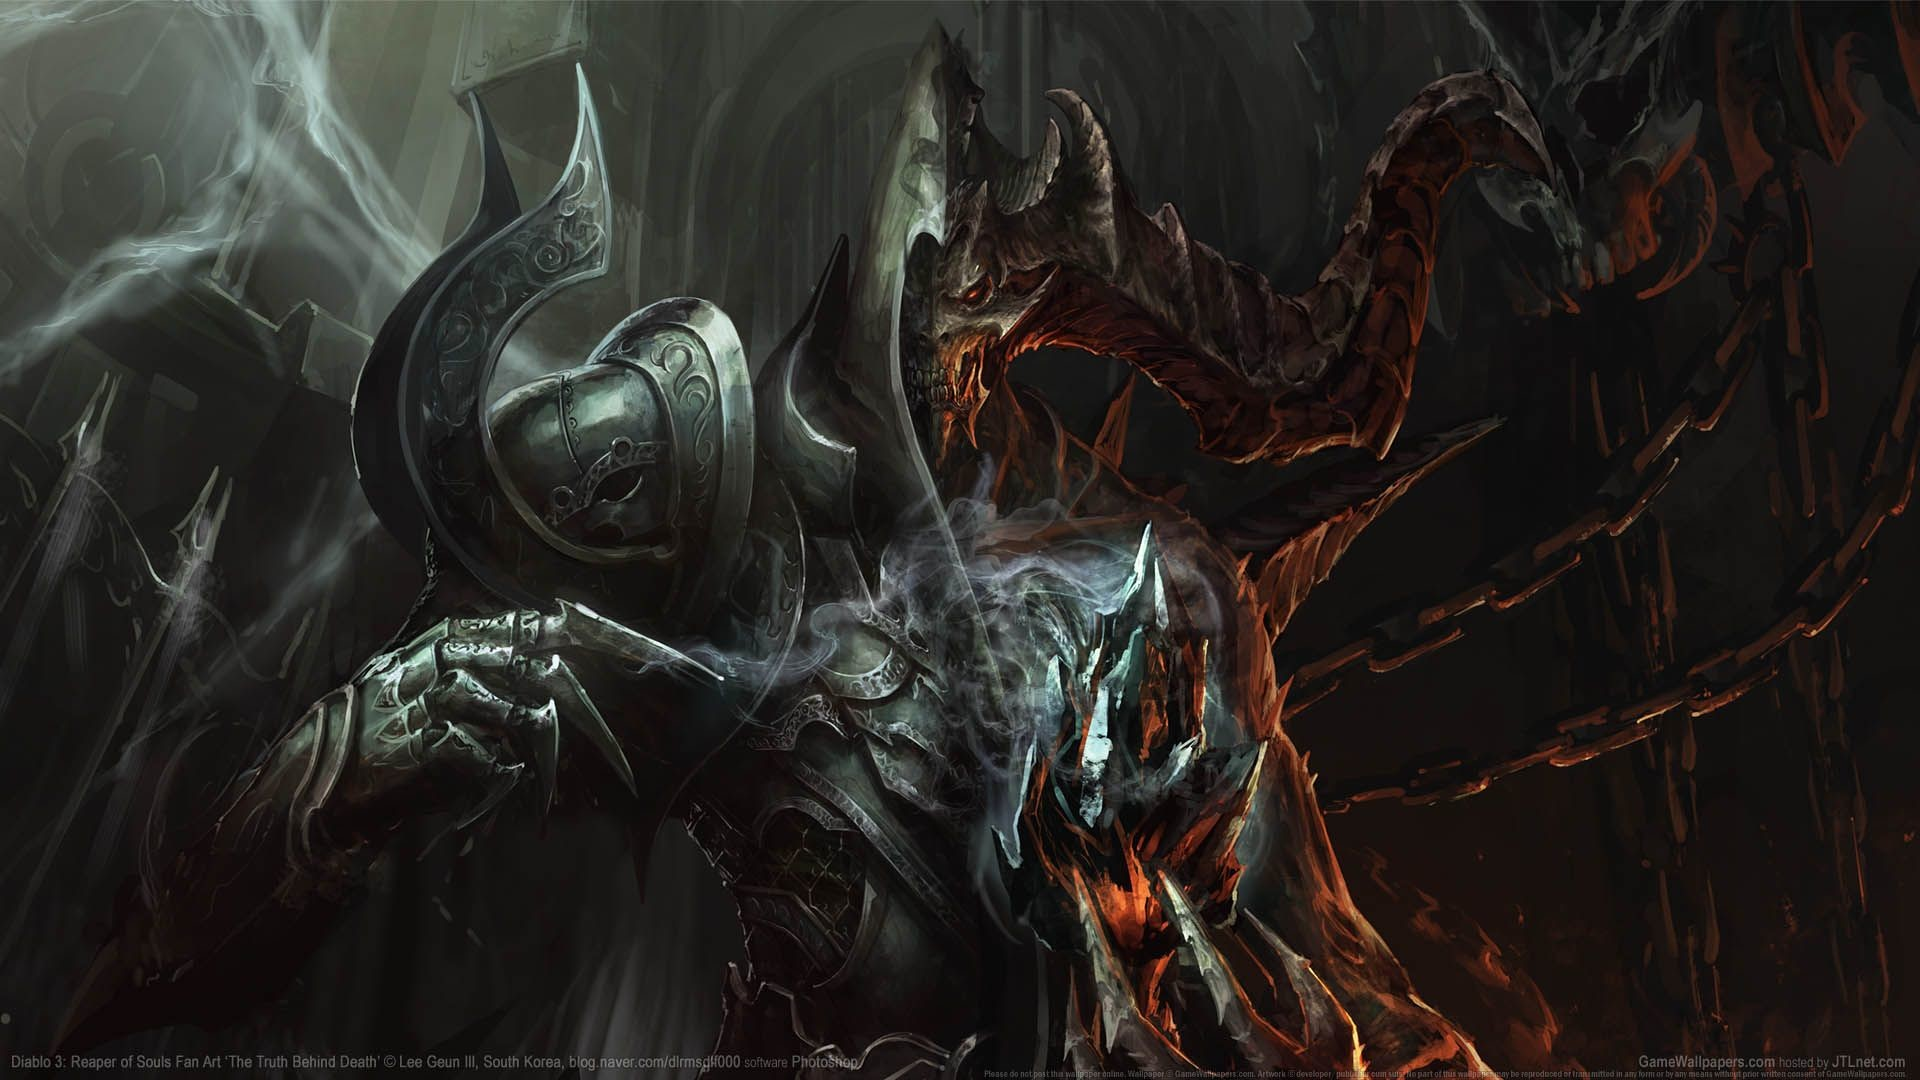 Res: 1920x1080, Diablo 3: Reaper of Souls Fan Art wallpapers or desktop backgrounds